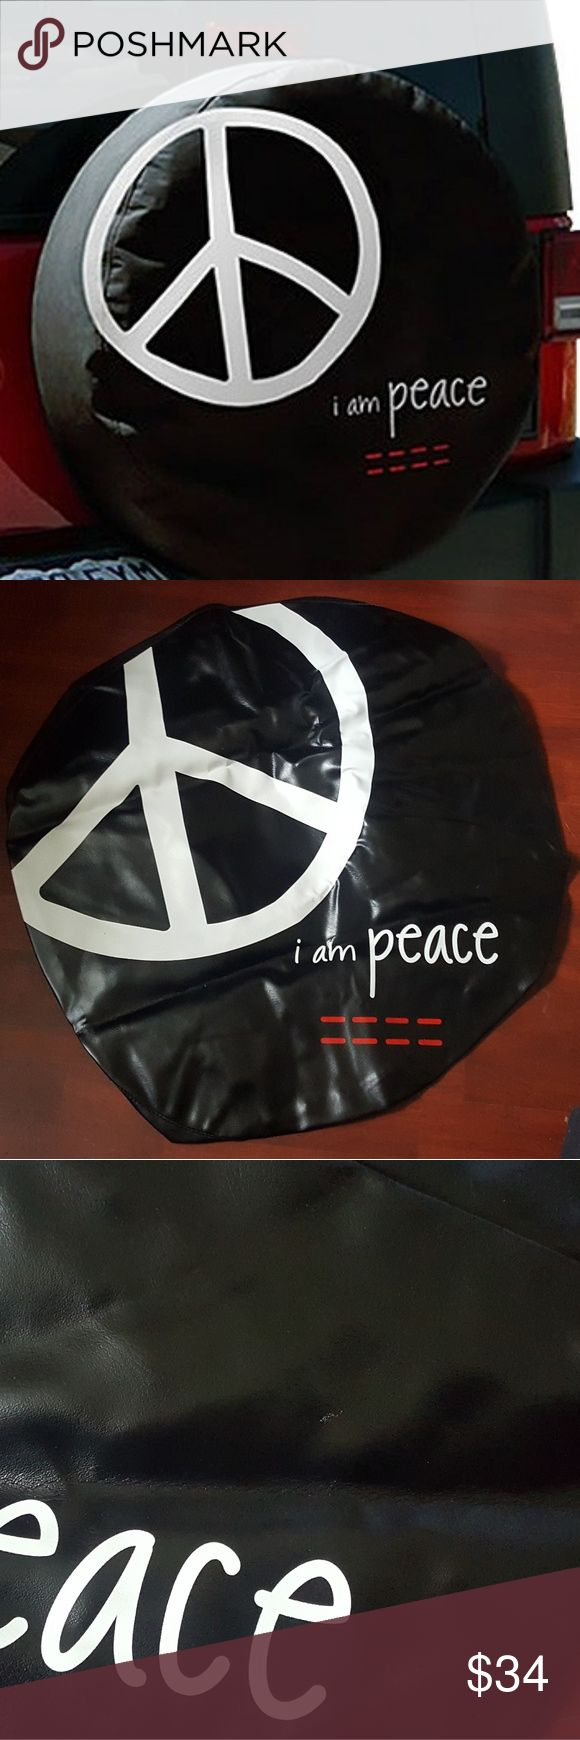 "Peace Love World Black Tire Cover W/ GIFT Peace Love World ""I am Peace"" Black Tire Cover 29"". Size M fits 29"" tires: Jeep Liberty, may fit the Honda CR-V. W/GIFT: 3 Bracelets PLW or 1 PLW sticker of your choice Peace Love World Accessories"